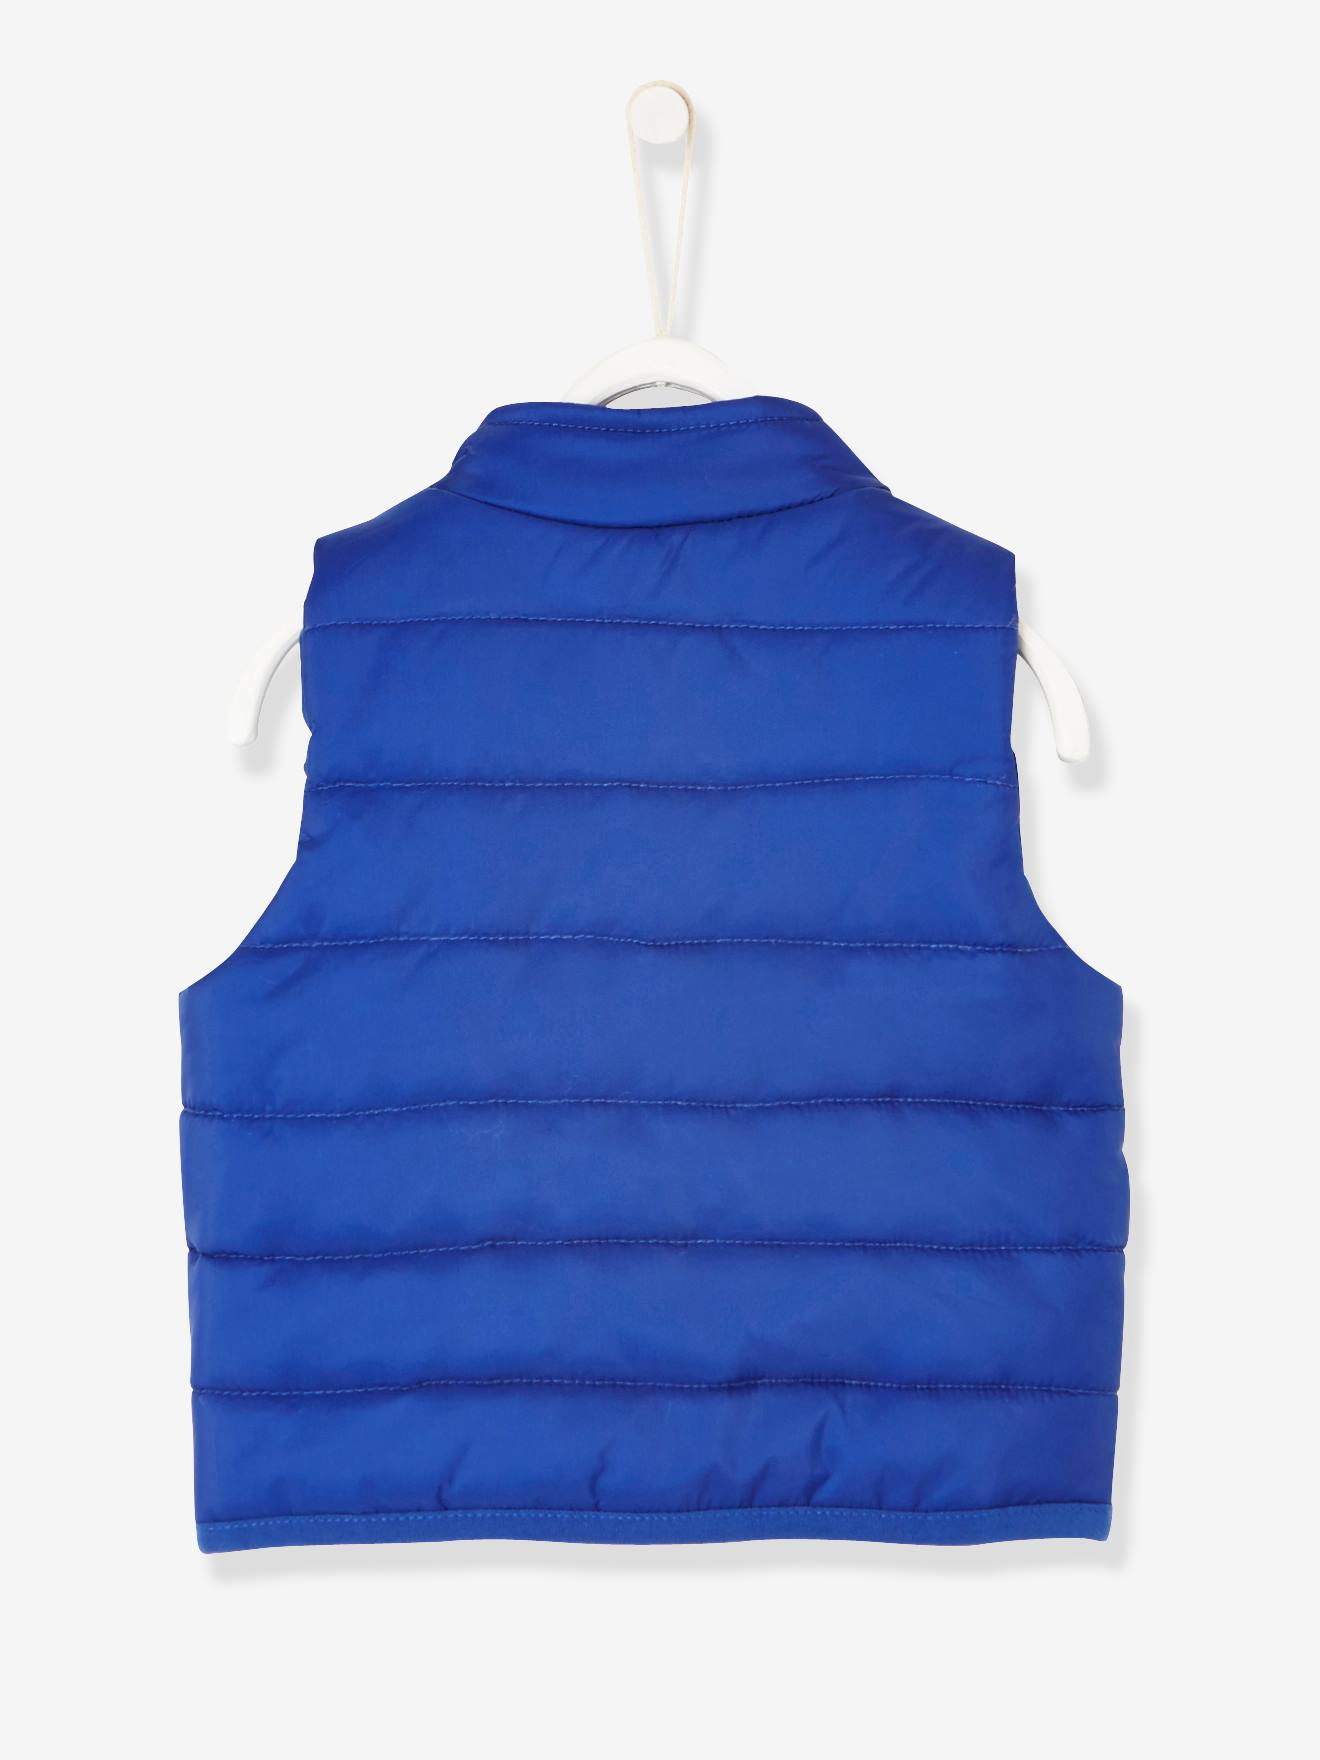 c6c2d80e7 Sleeveless Padded Jacket for Baby Boys - blue bright solid, Baby